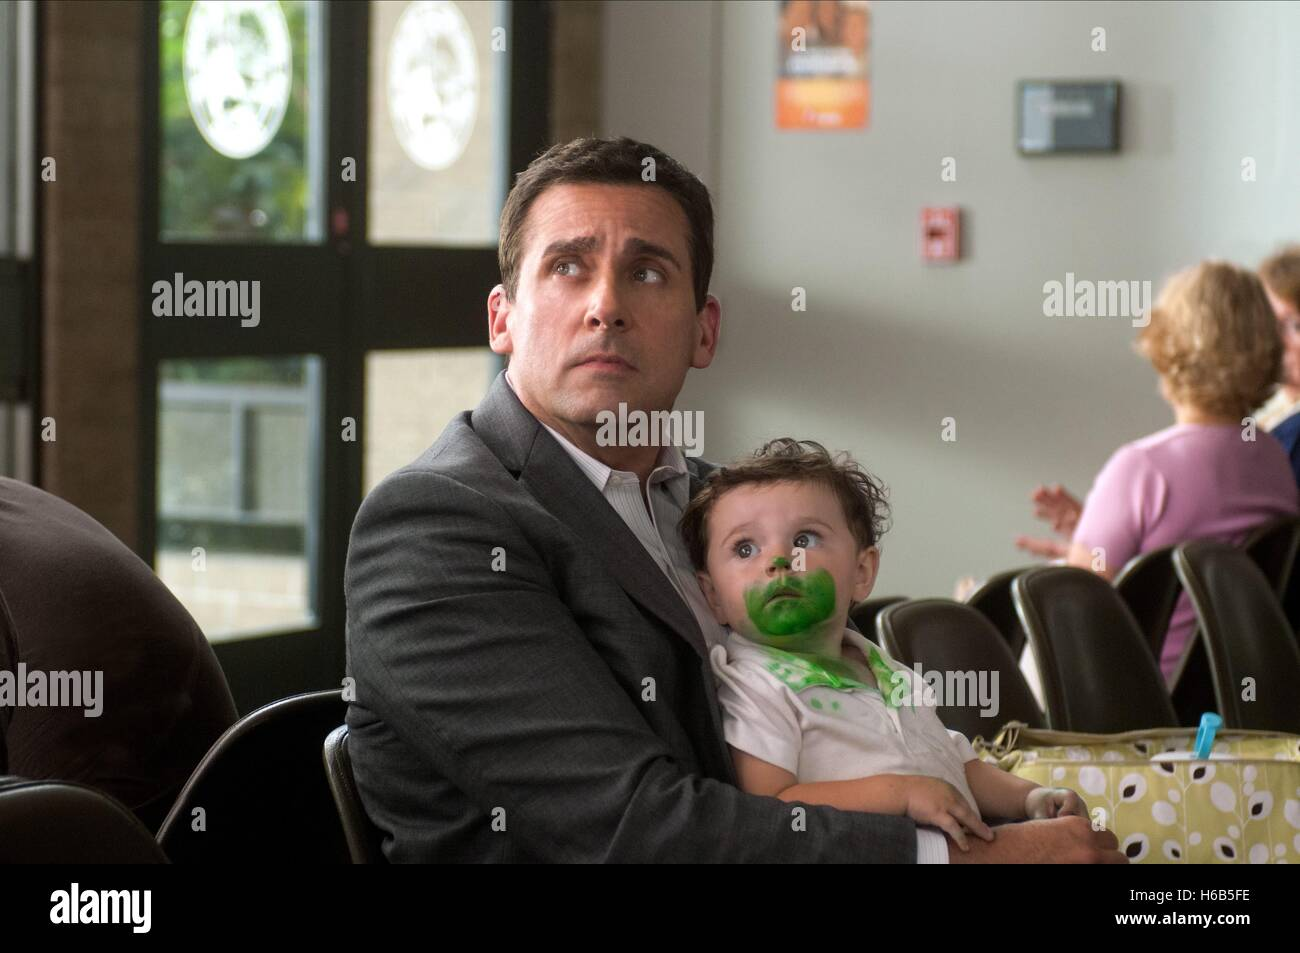 STEVE CARELL ALEXANDER AND THE TERRIBLE HORRIBLE NO GOOD VERY BAD DAY (2014) - Stock Image